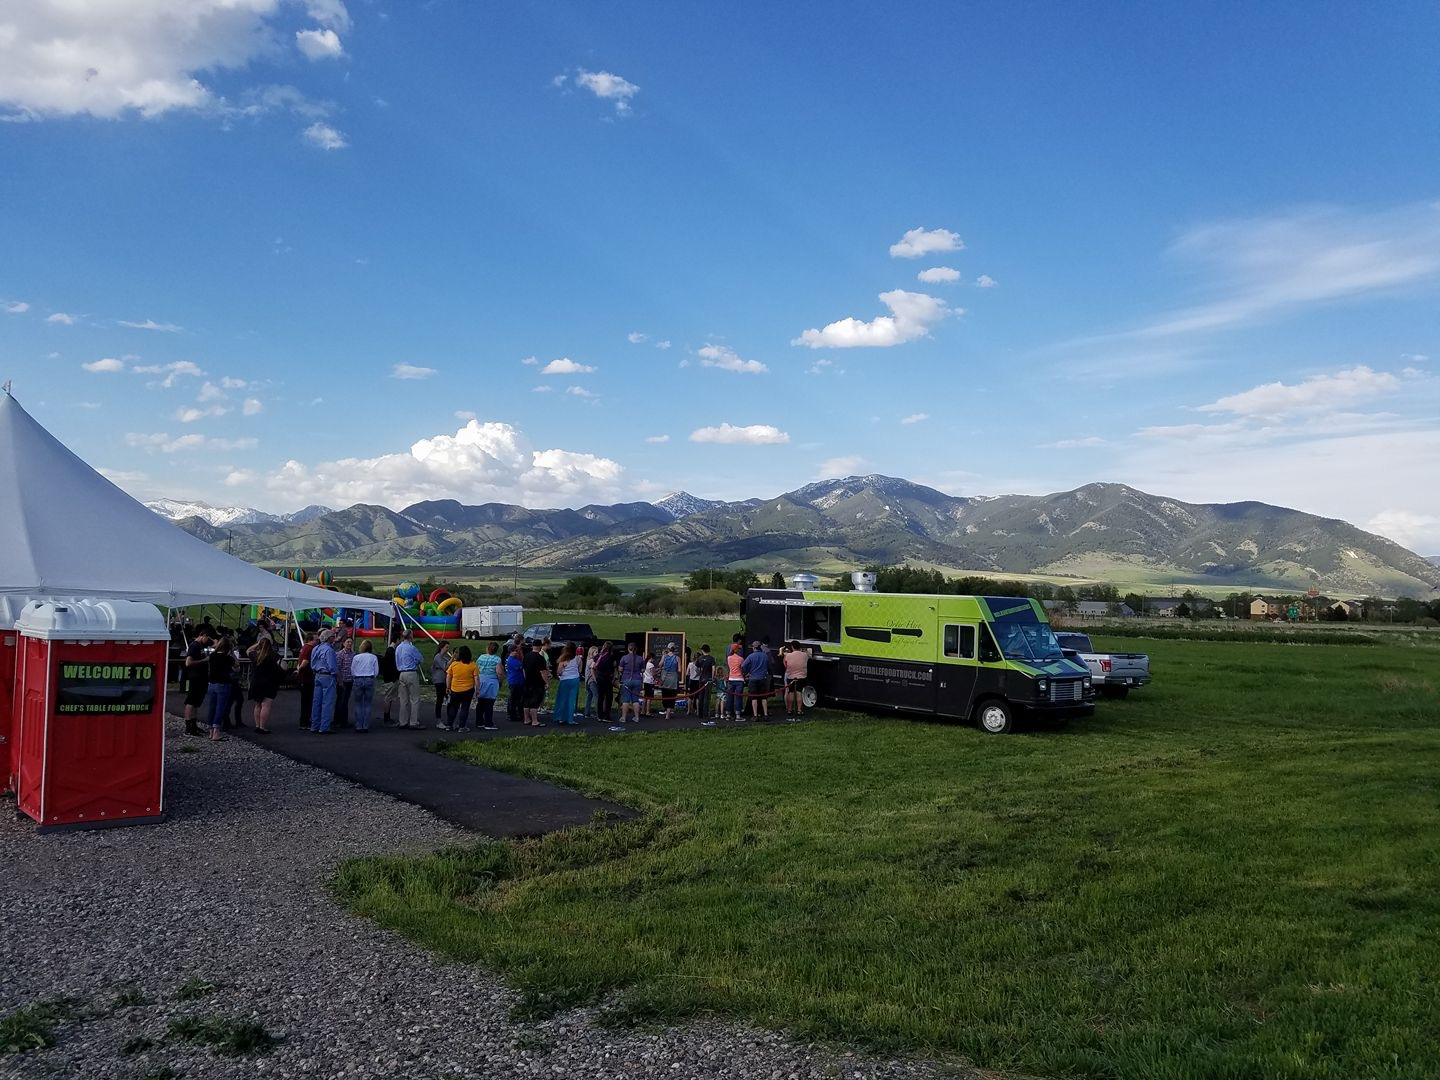 Picture taken at Chef's Table Food Truck welcome BBQ for the community.